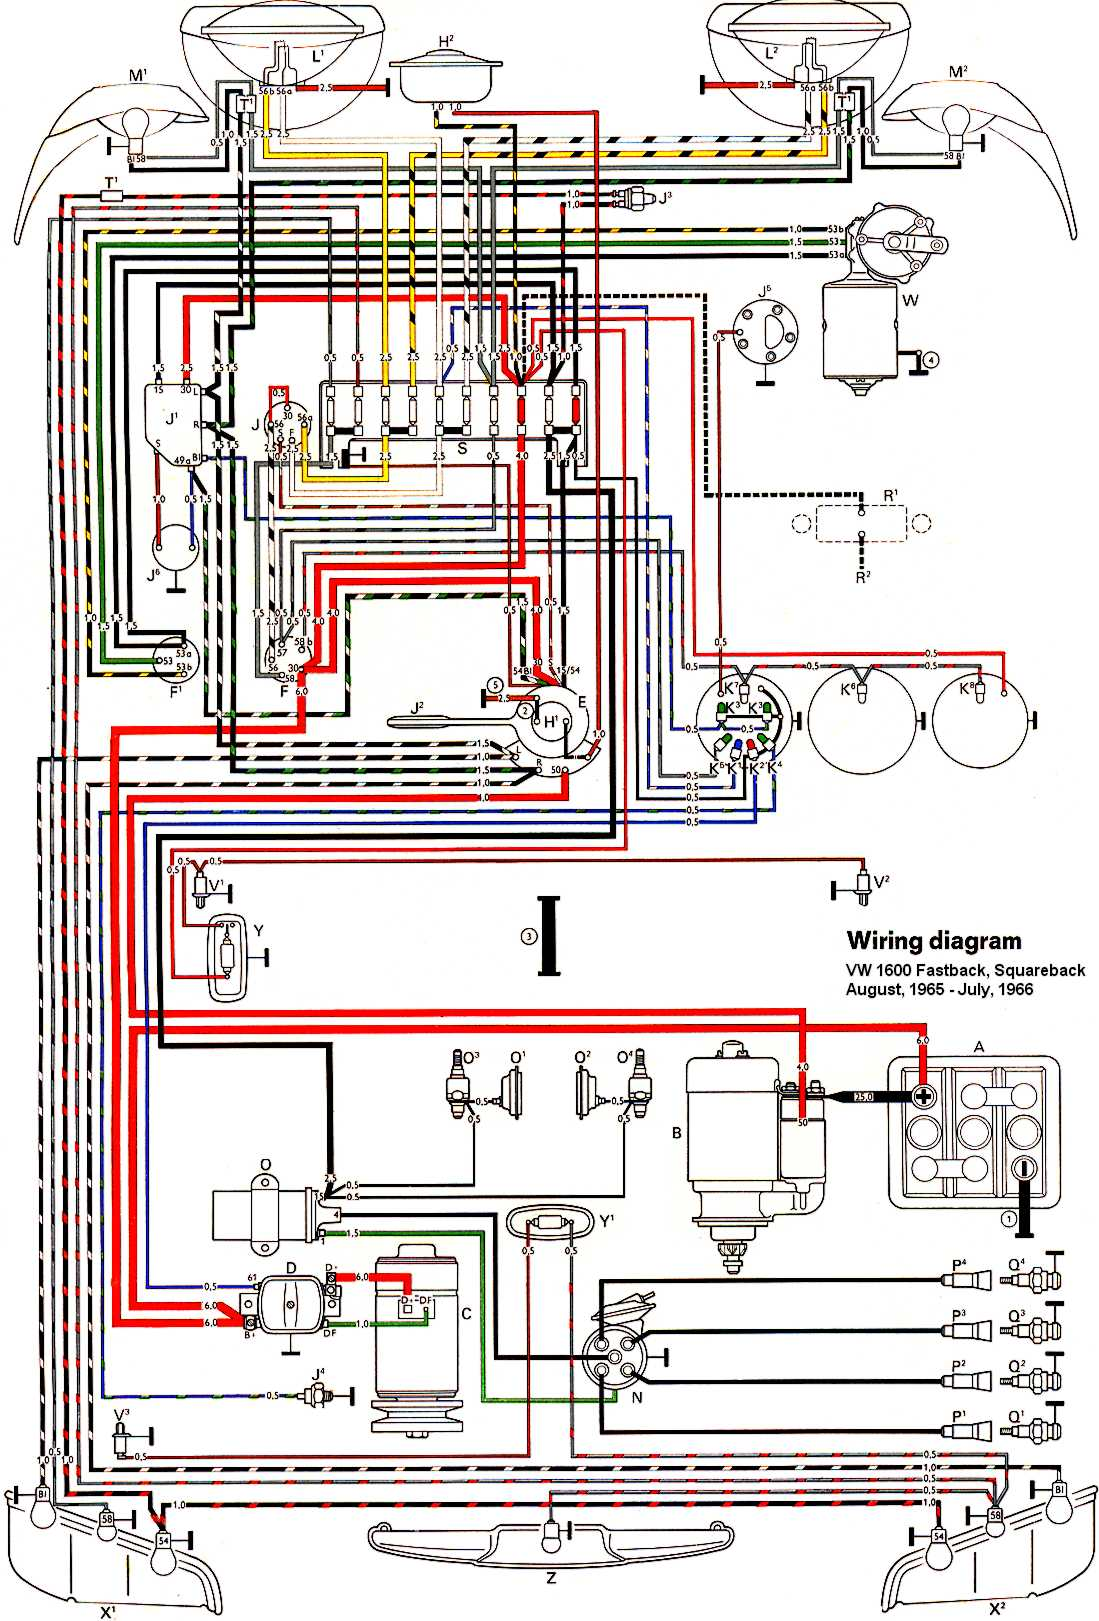 type3_1600_66 2003 vw beetle wiring diagram 2003 nissan maxima wiring diagram new beetle wiring diagram at bayanpartner.co